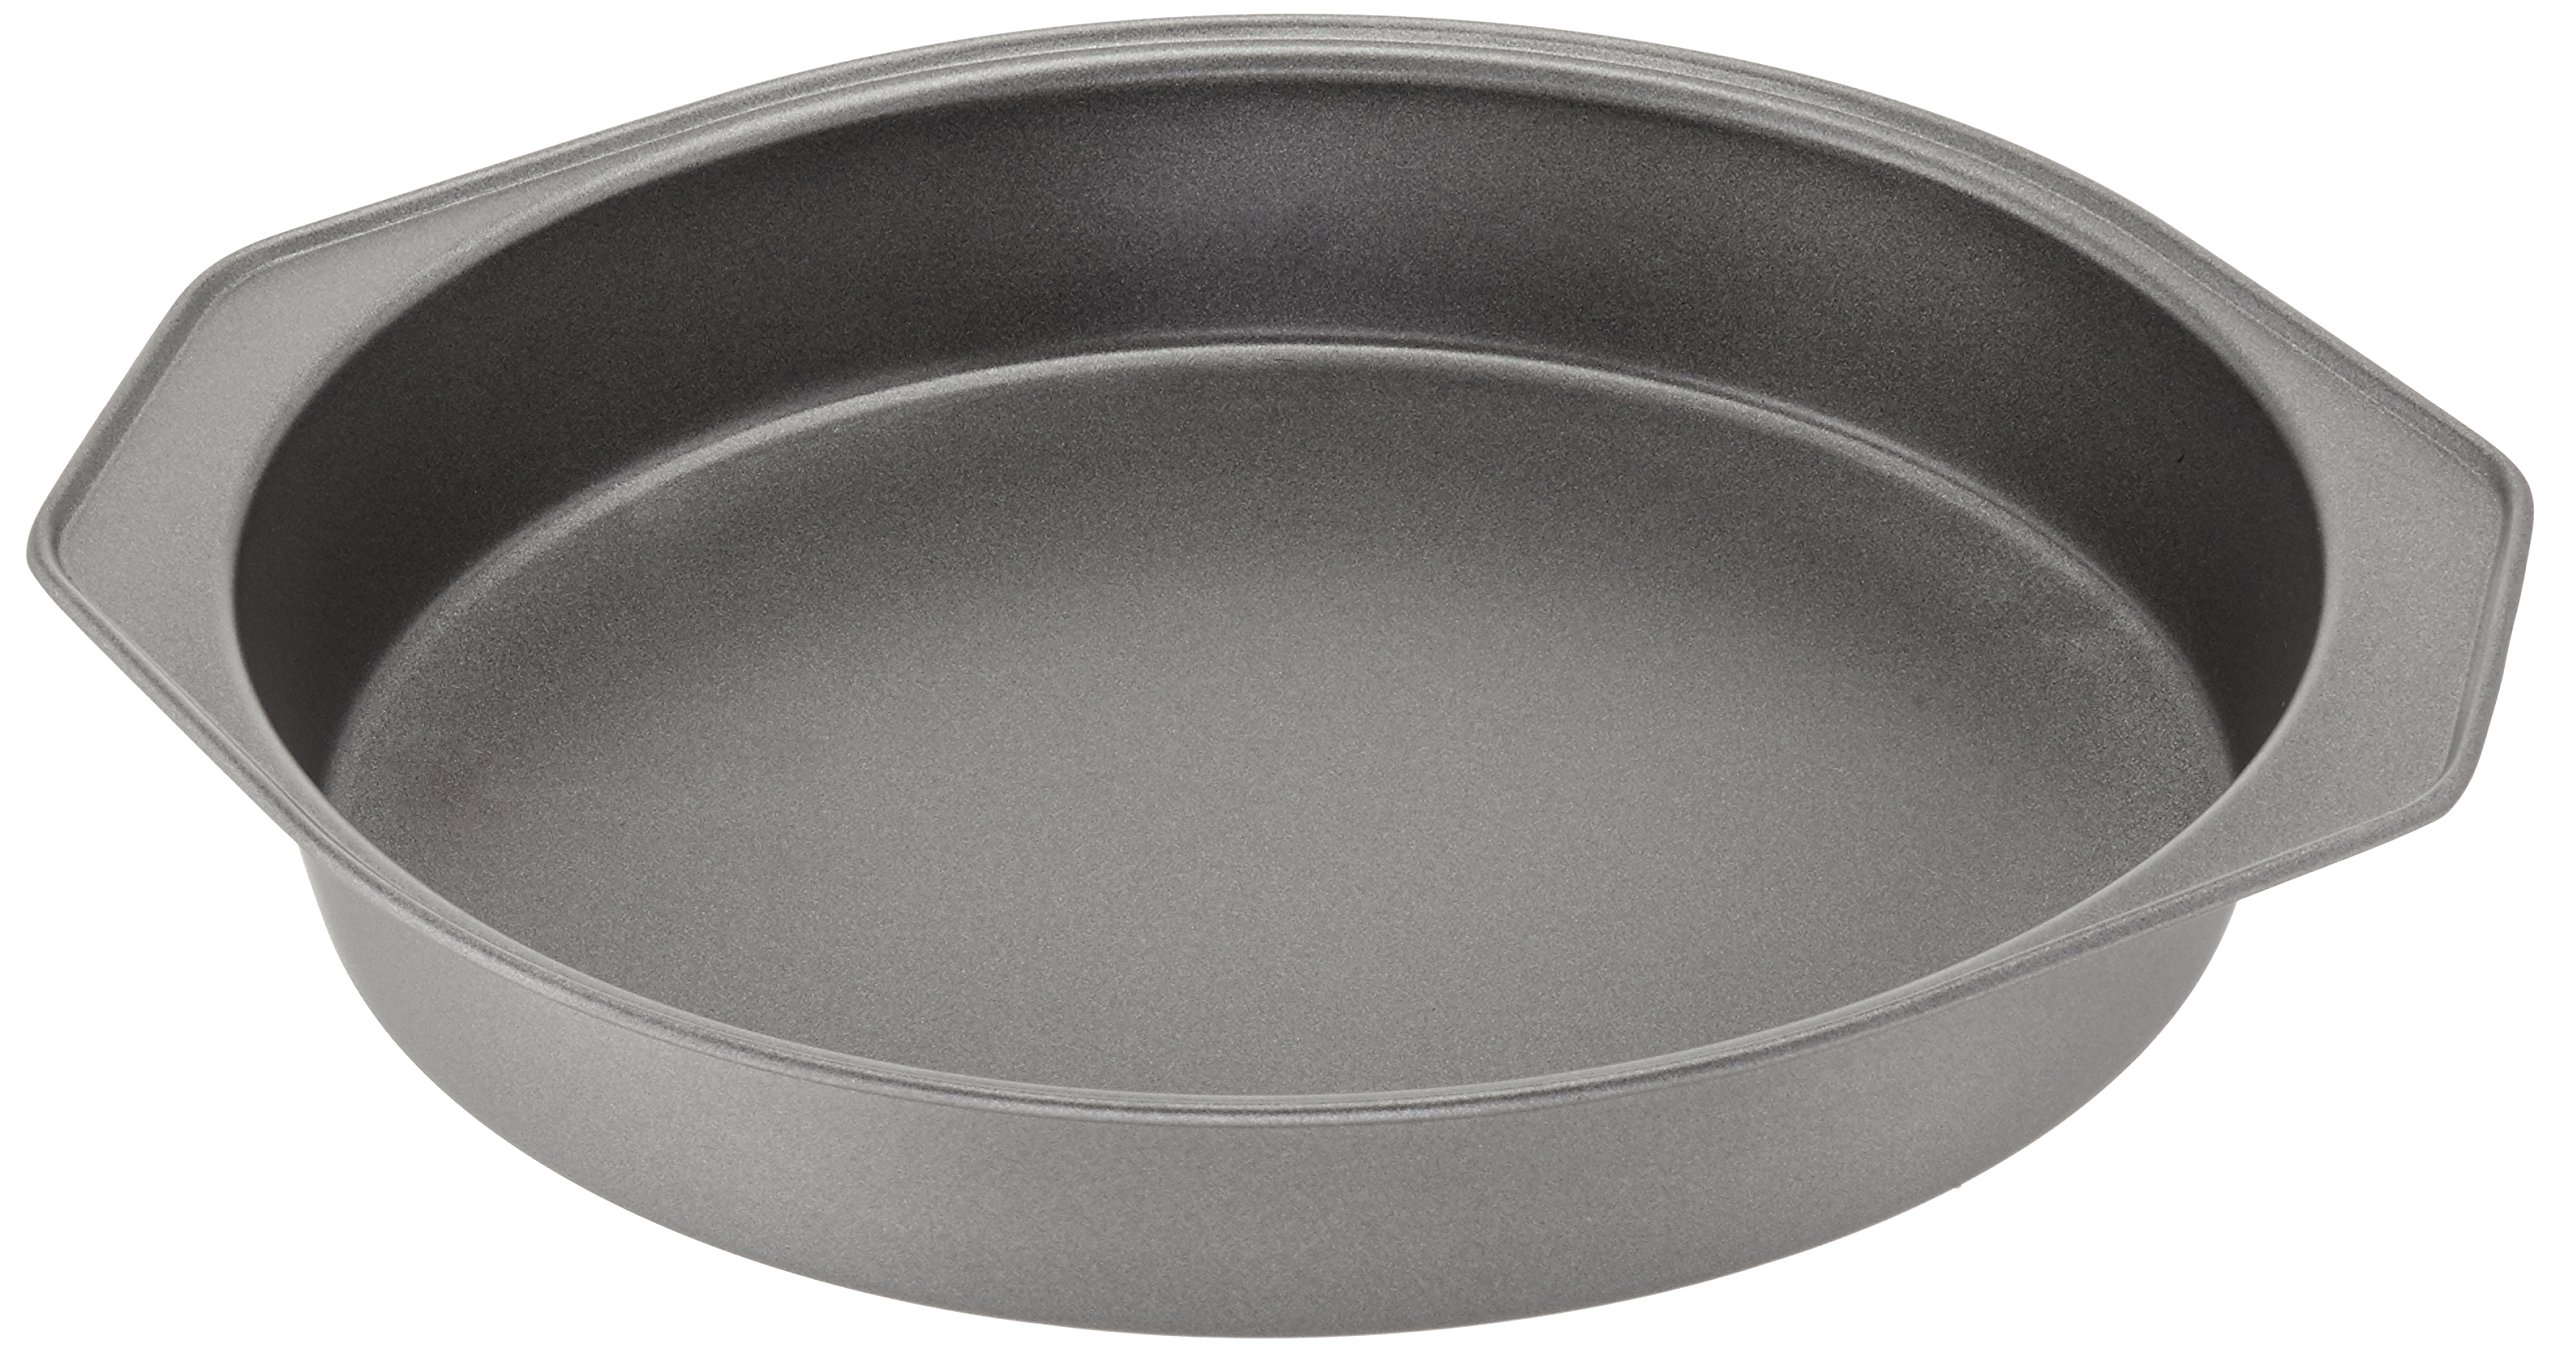 AmazonBasics 6-Piece Nonstick Bakeware Set by AmazonBasics (Image #6)